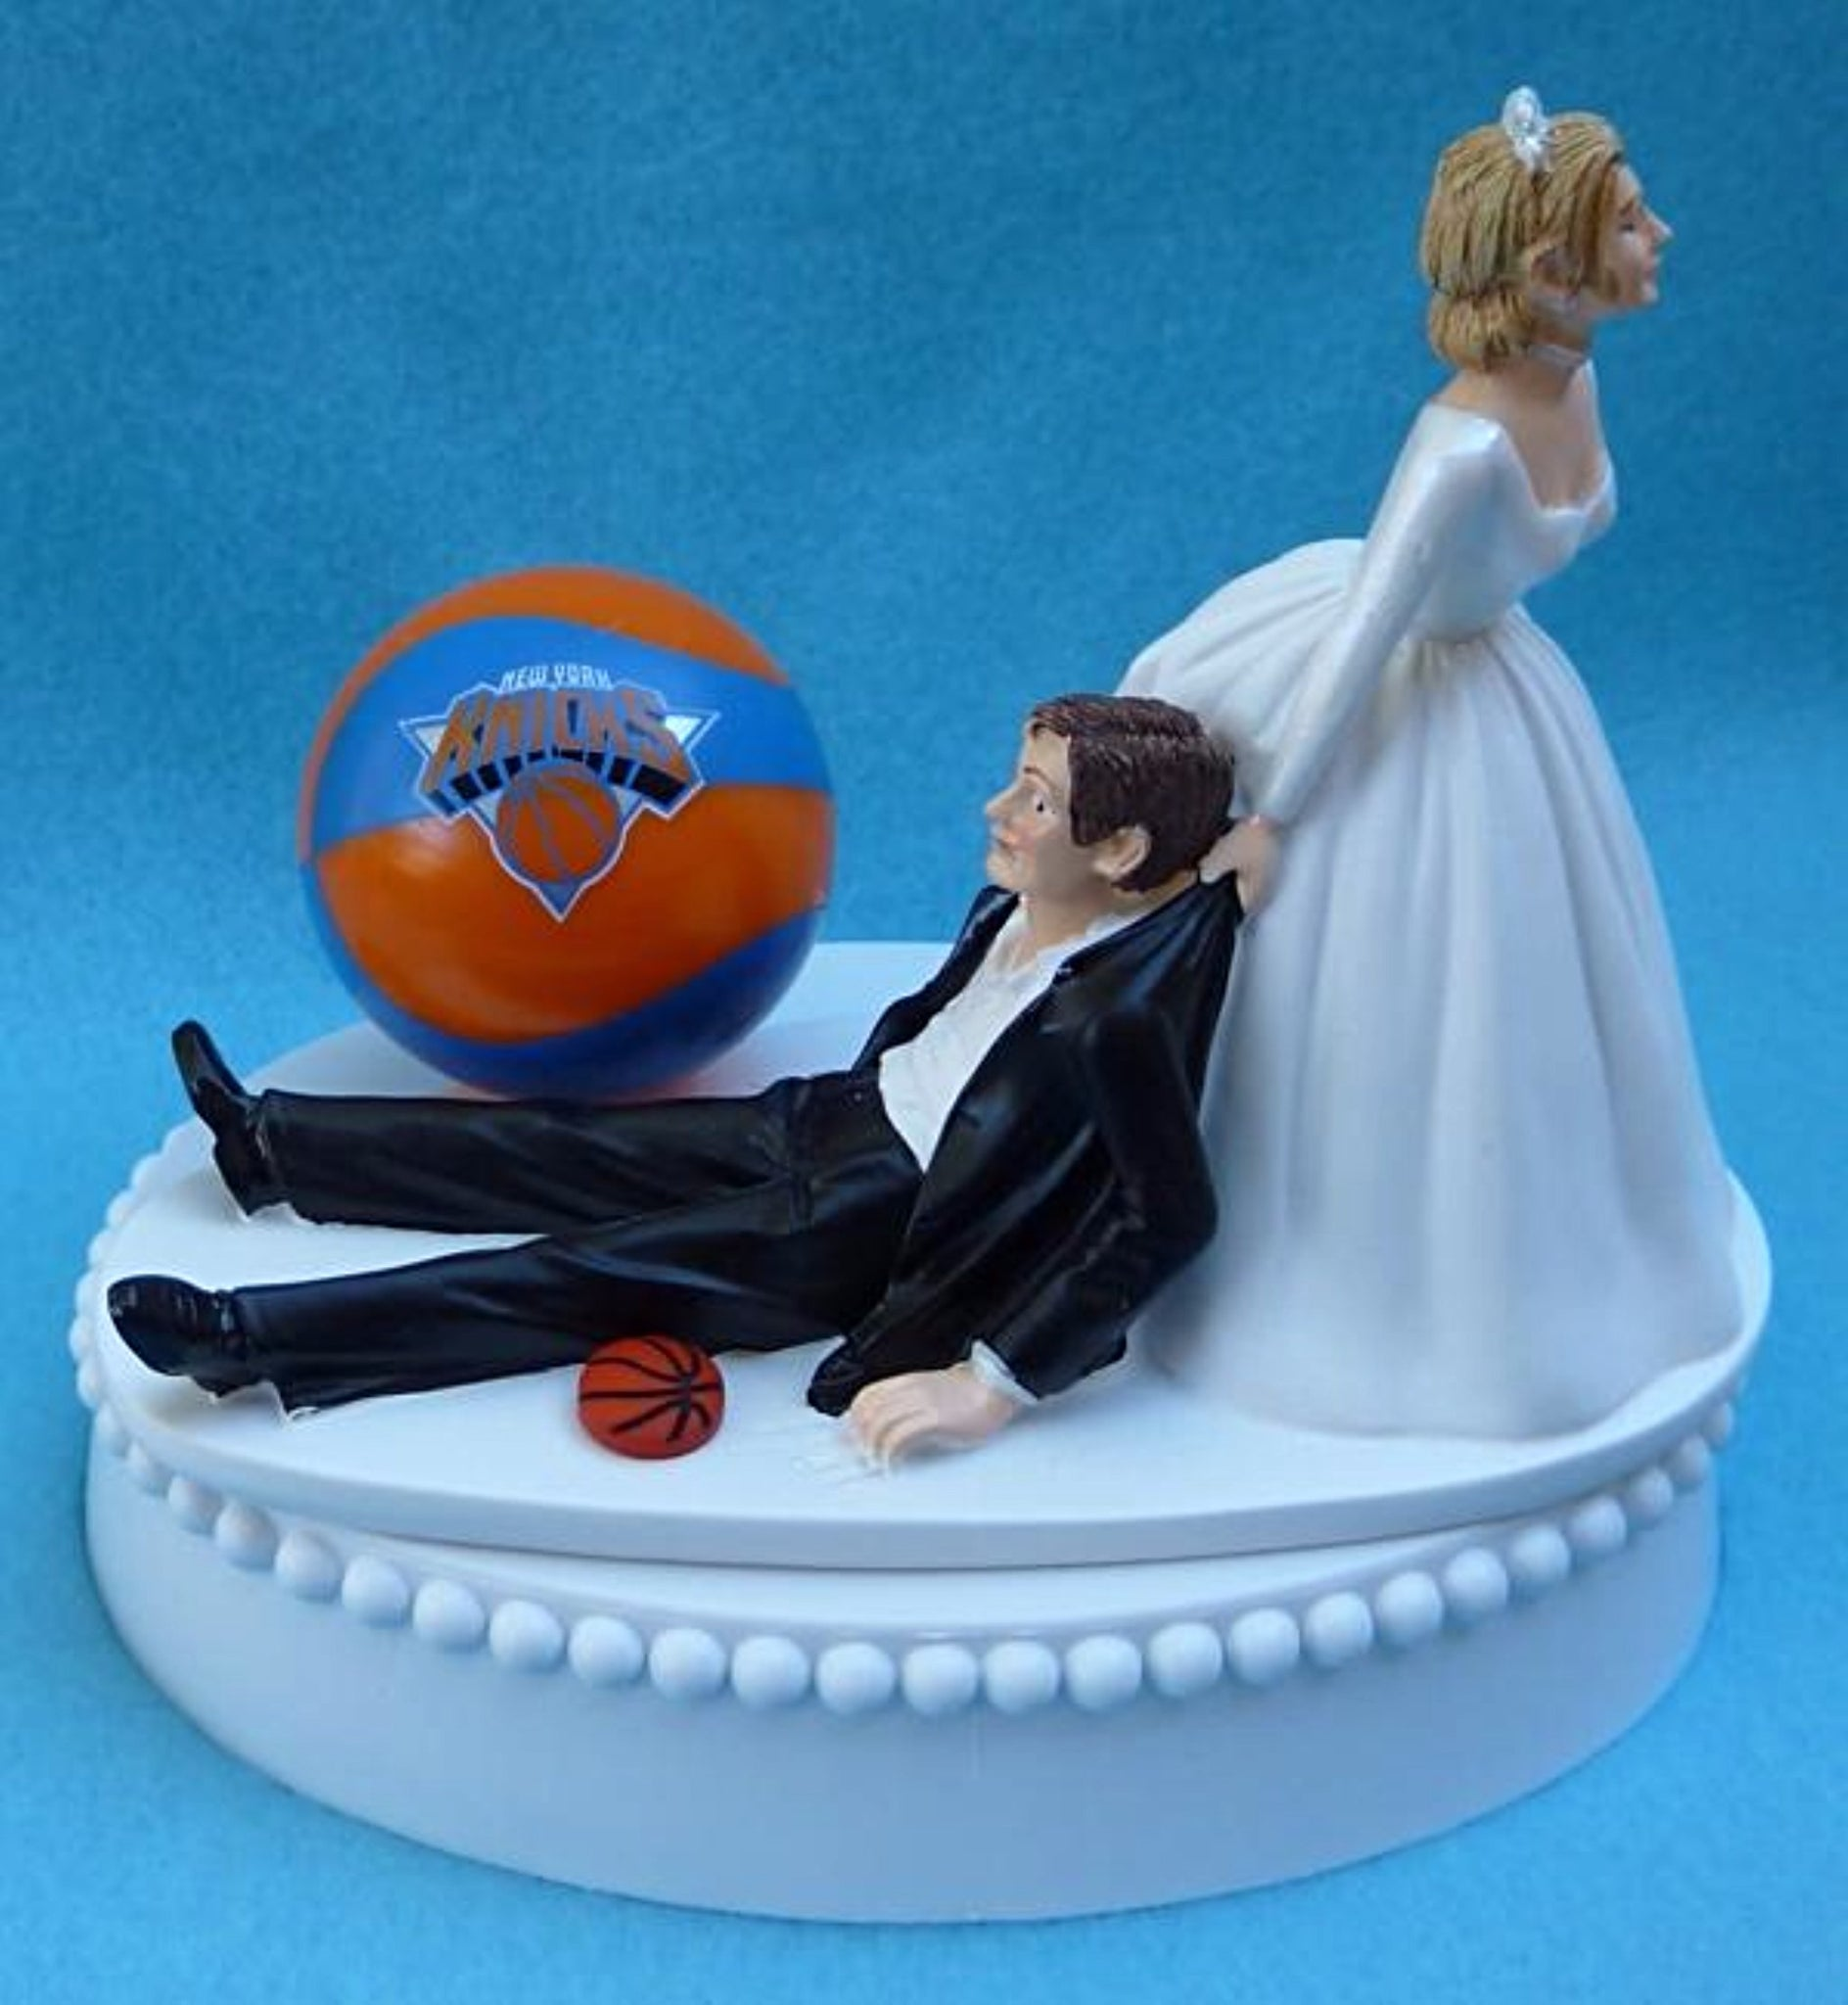 New York Knicks wedding cake topper NY basketball NBA humorous bride drags groom sports fans Fun Wedding Things ball reception gift item idea